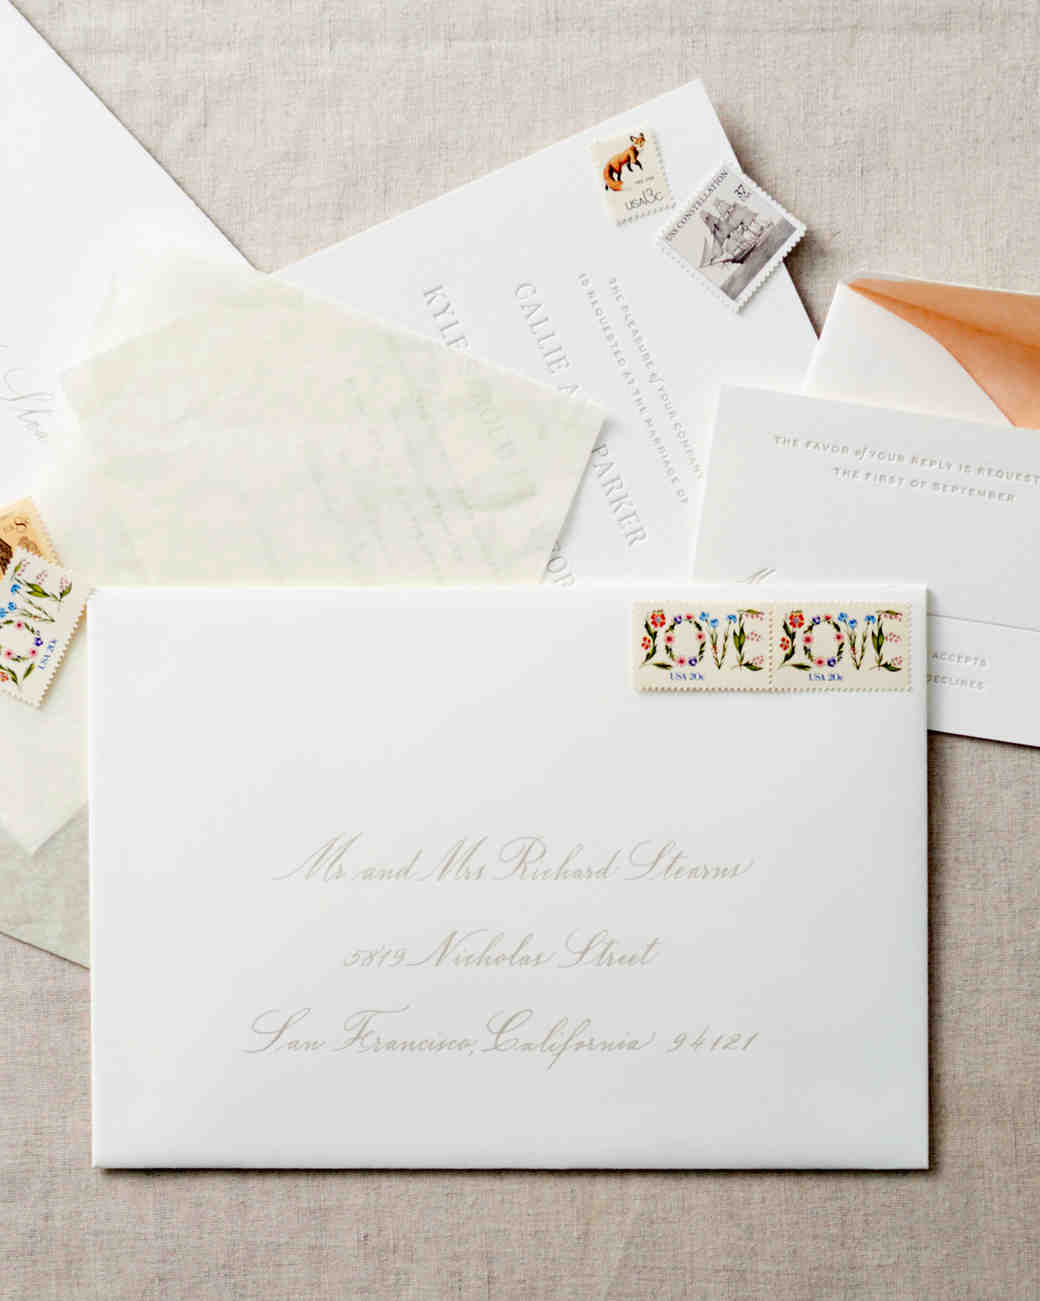 Guests Names Though Etiquette For Addressing And Embling Wedding Invitations